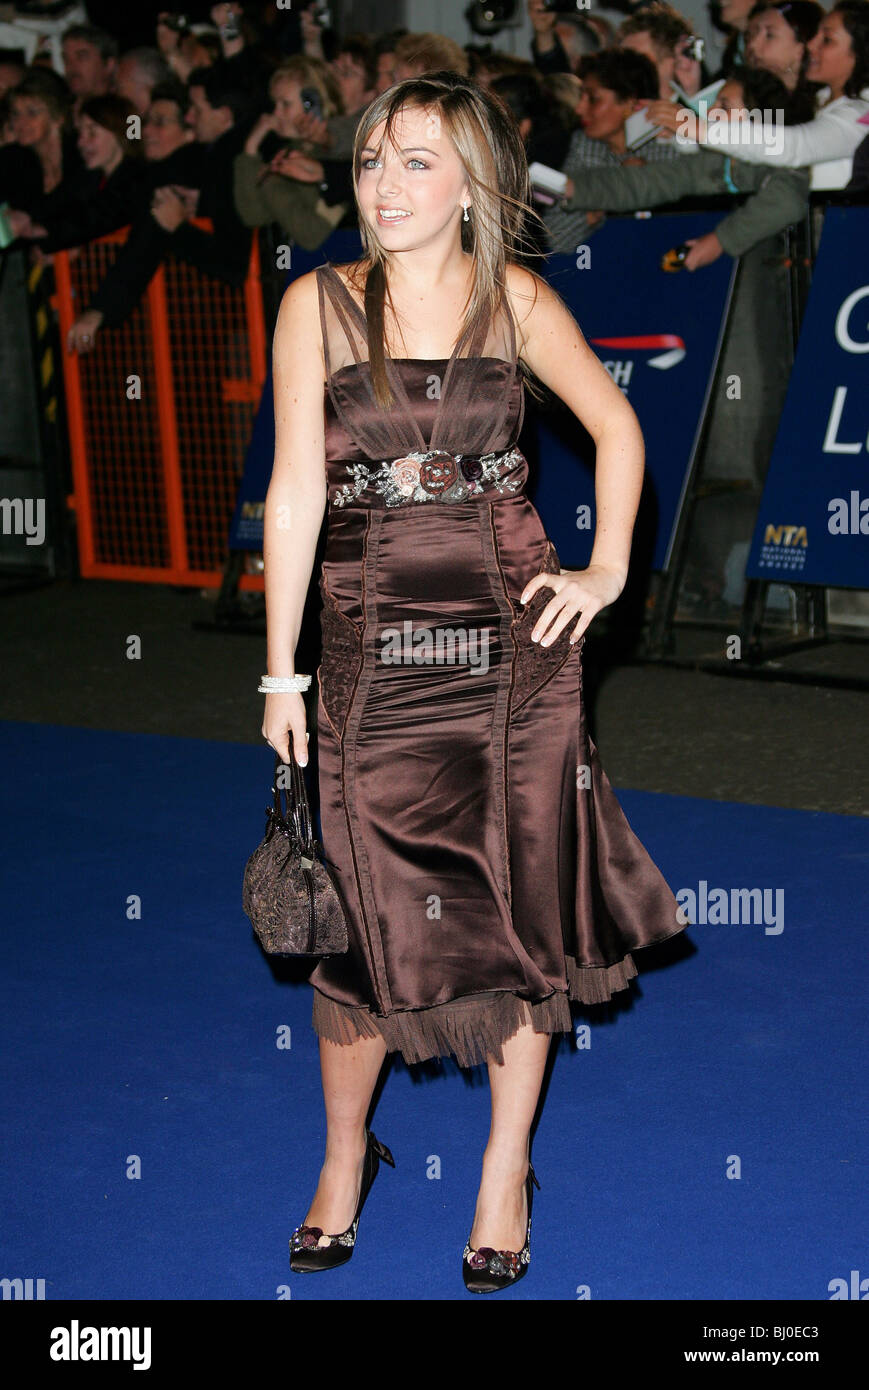 LOUISA LYTTON ACTRICE Royal Albert Hall Londres Angleterre 25/10/2005 Banque D'Images